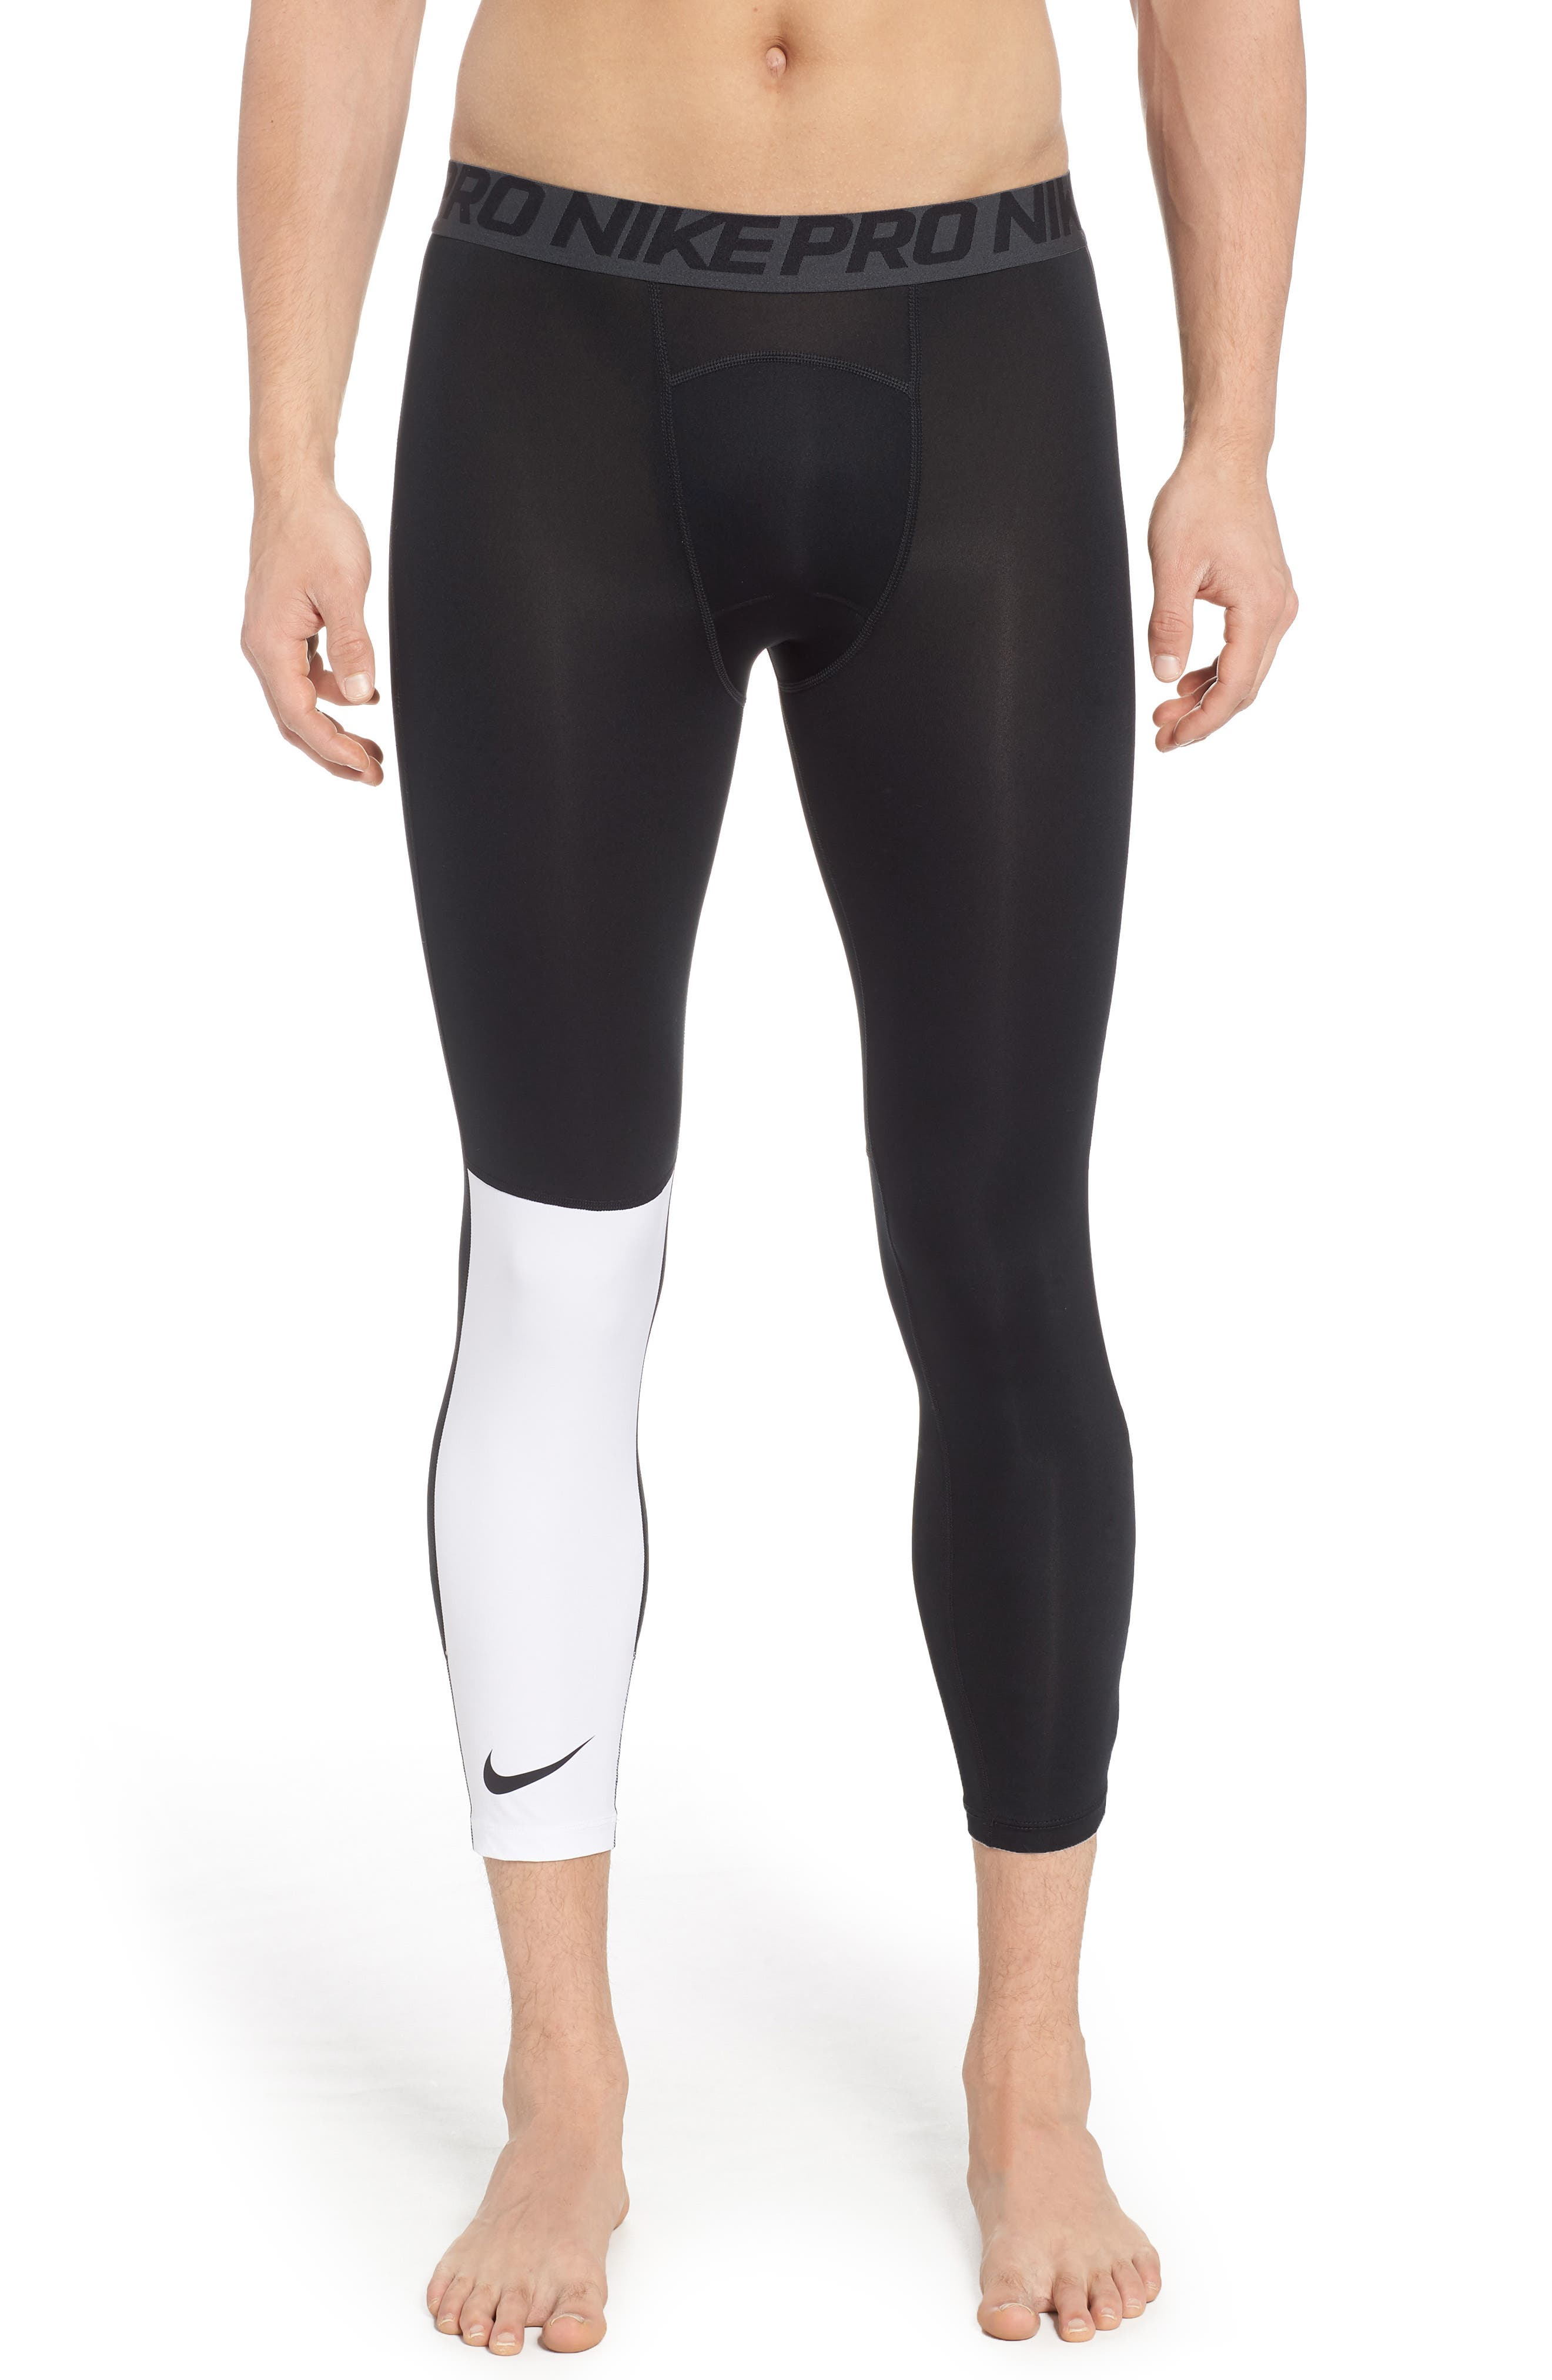 NP Running Tights,                             Main thumbnail 1, color,                             010